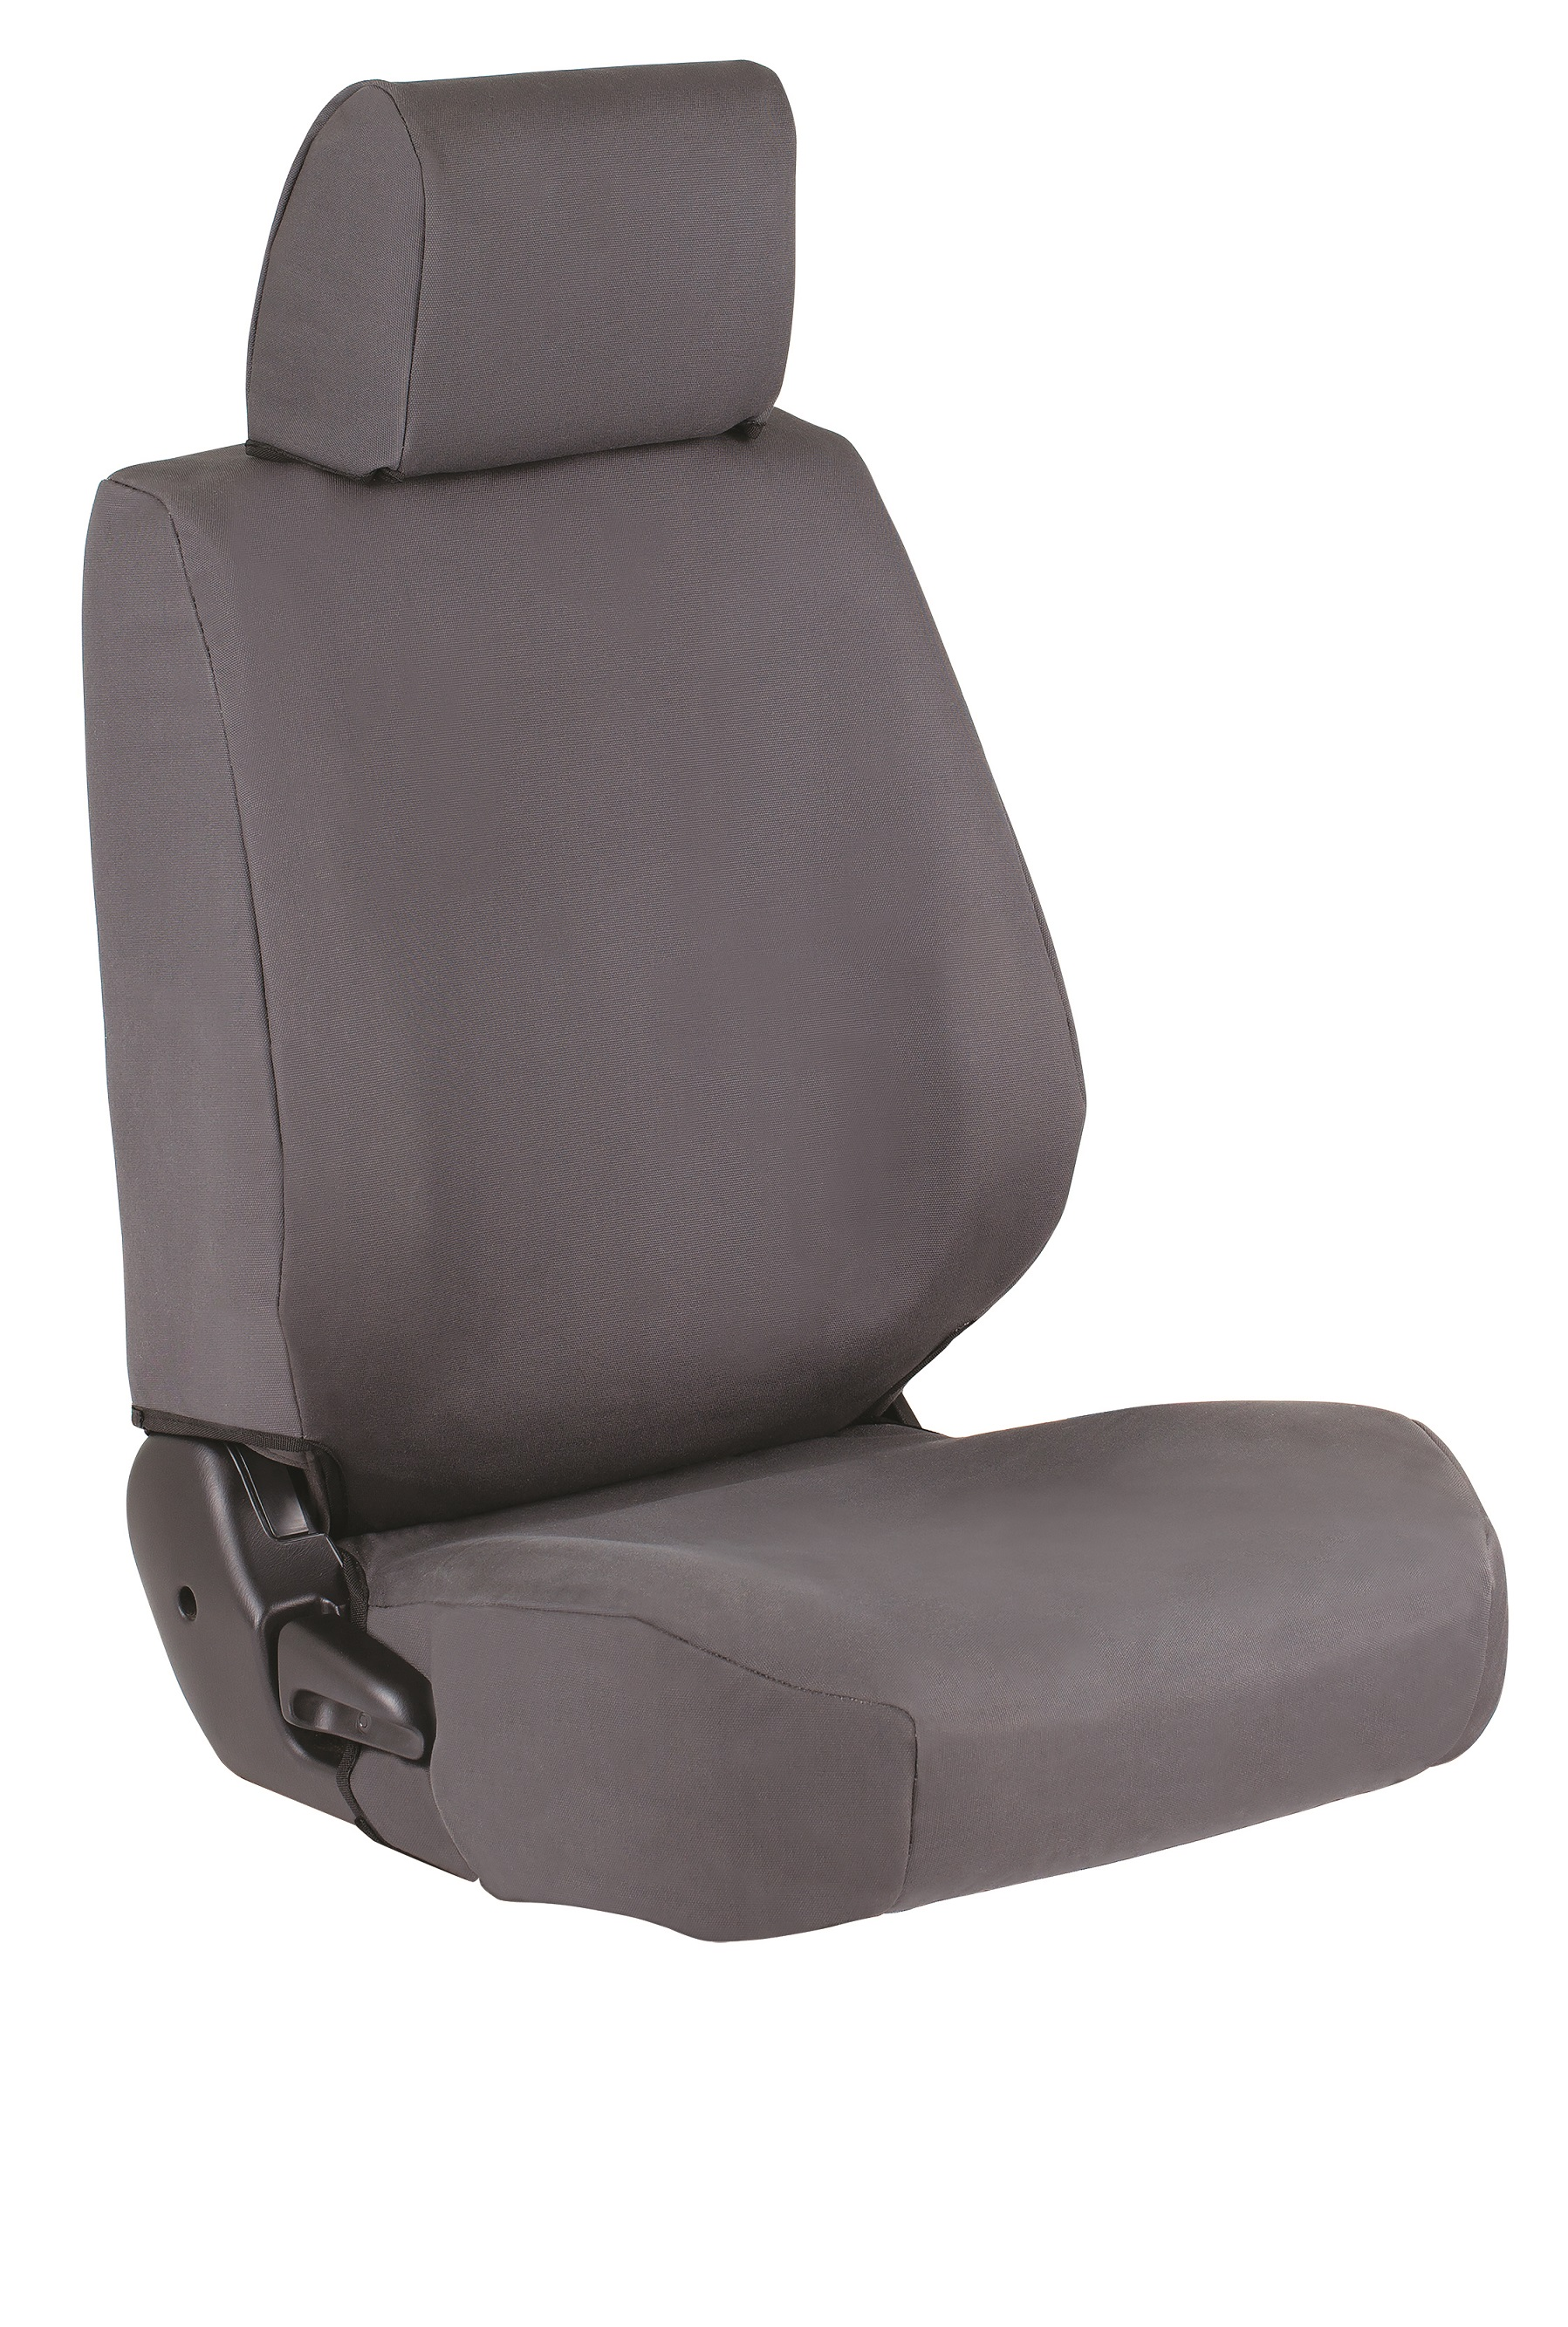 Tailored Comfort Canvas Seat Covers